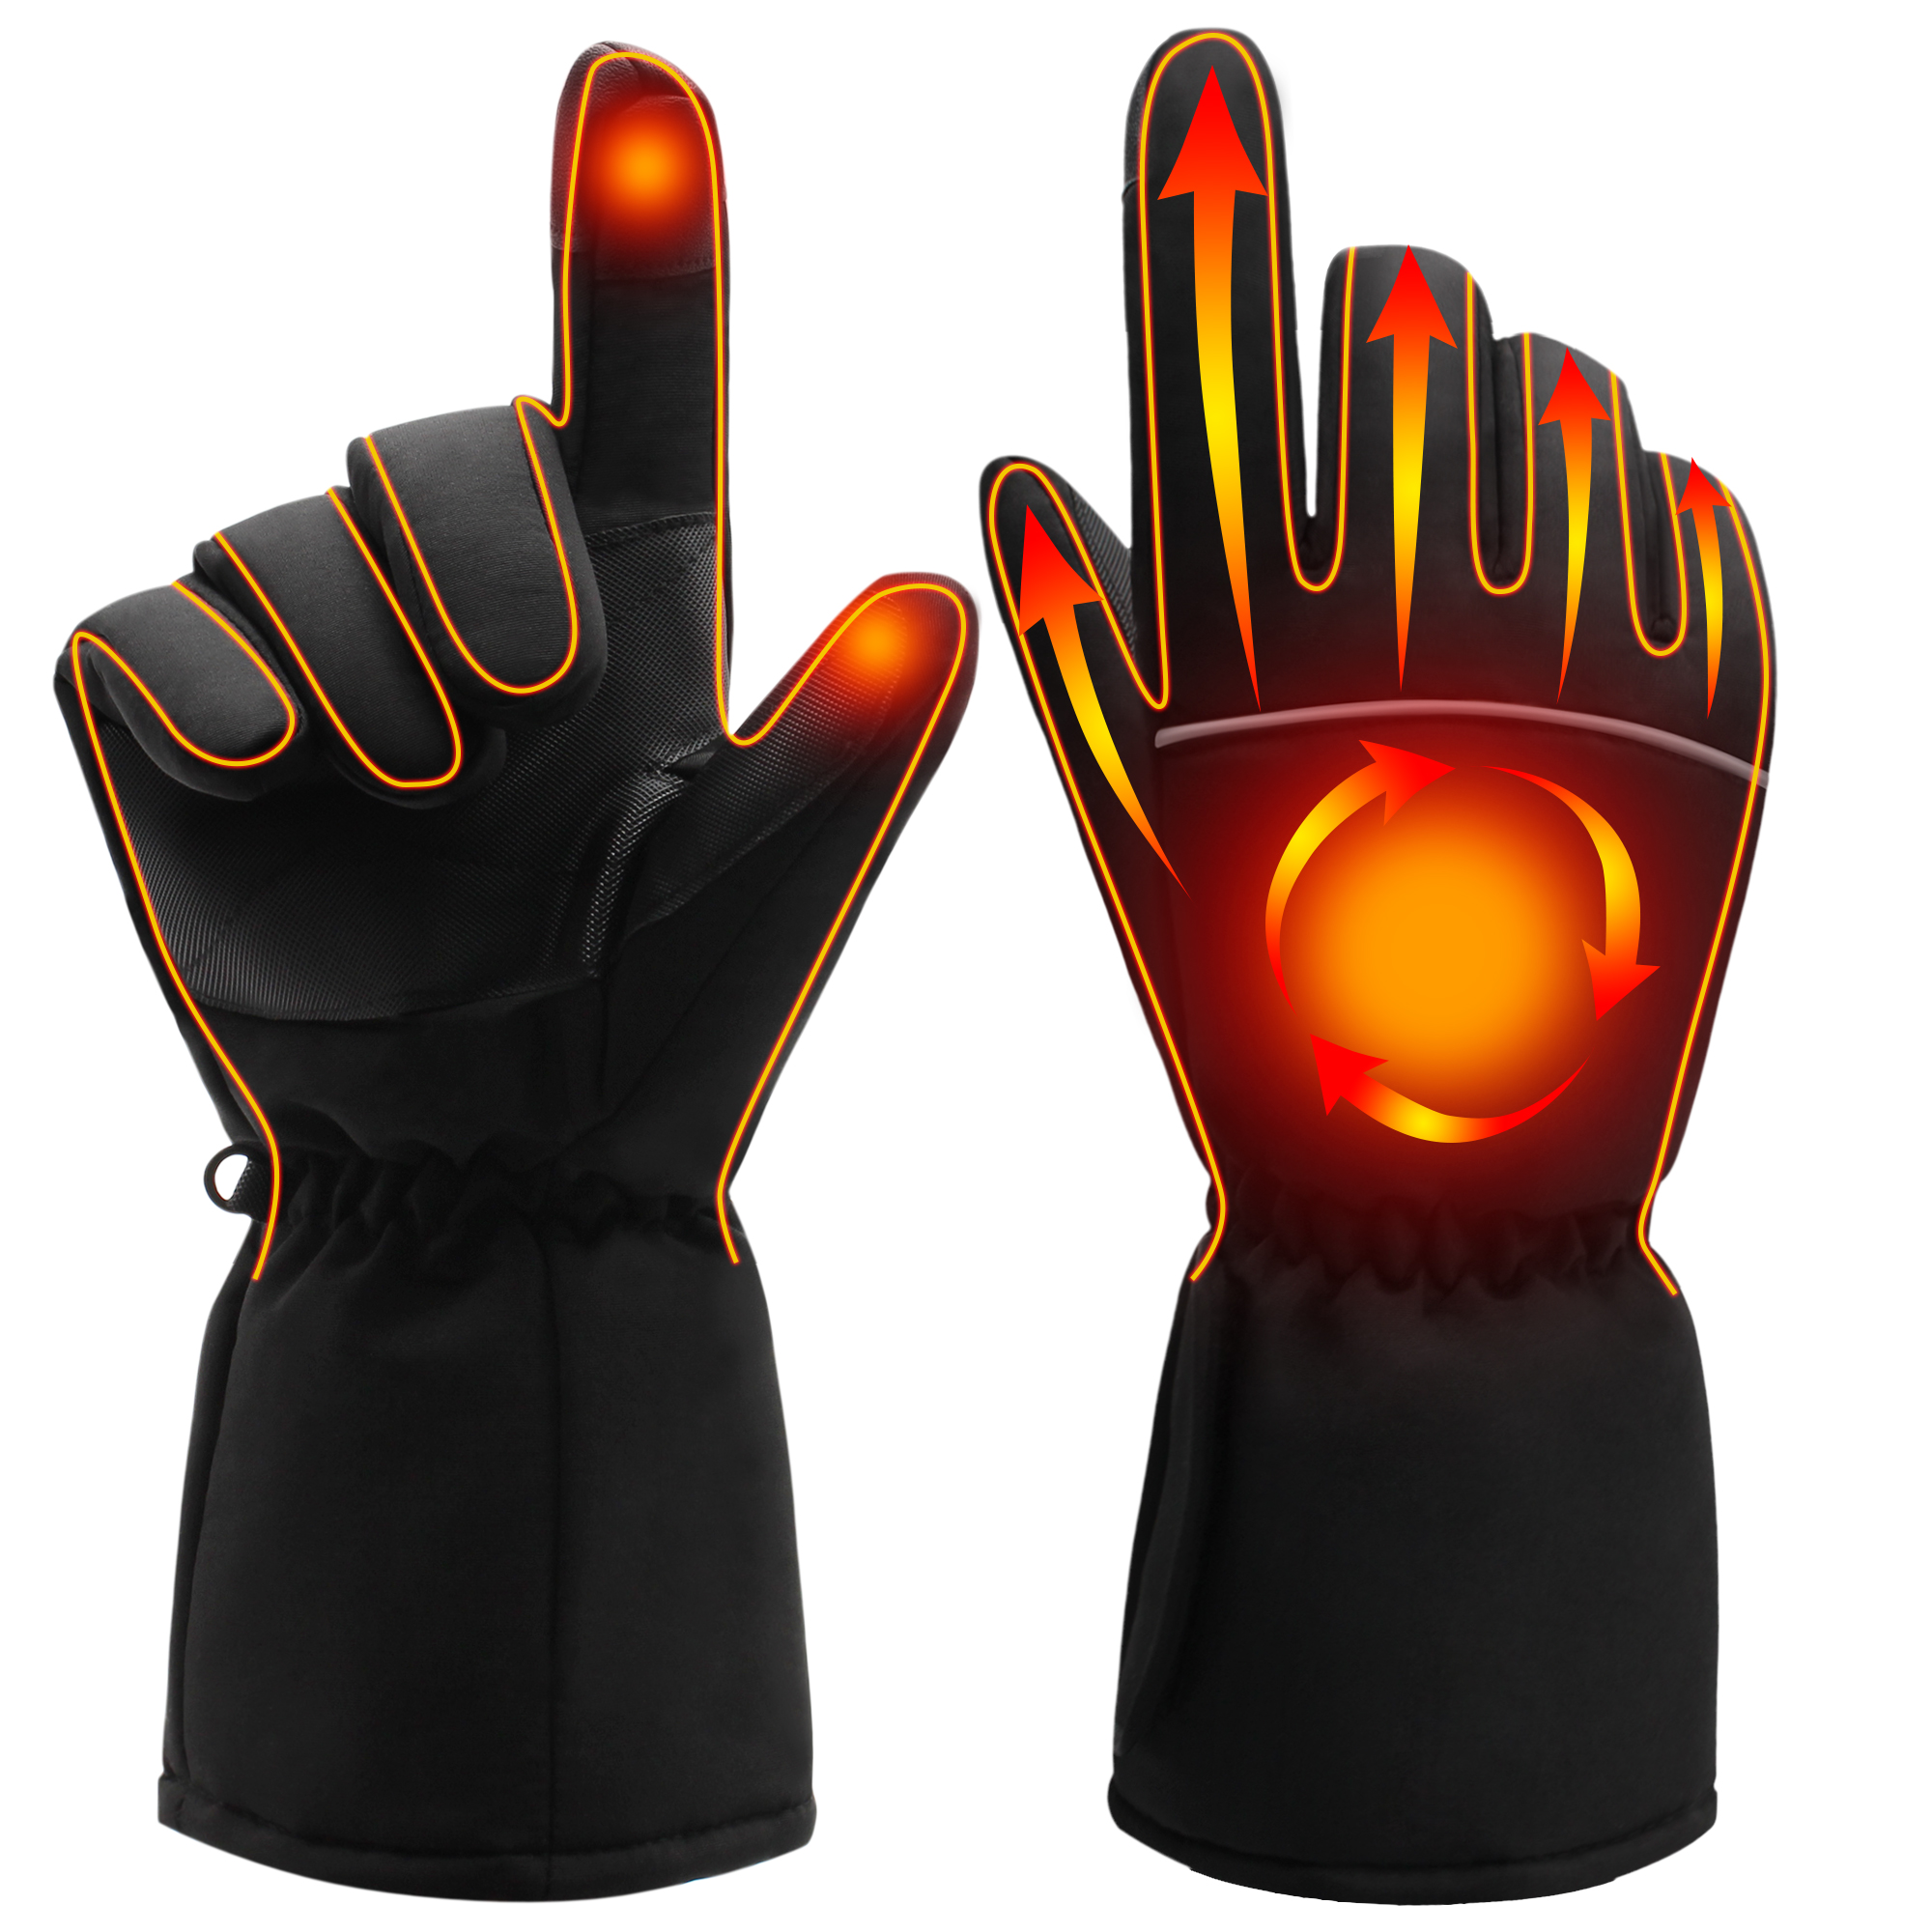 Winter Hand Warmer Electric Thermal Gloves Rechargeable Battery Heated Gloves Cycling Motorcycle Bicycle Ski Gloves Unisex